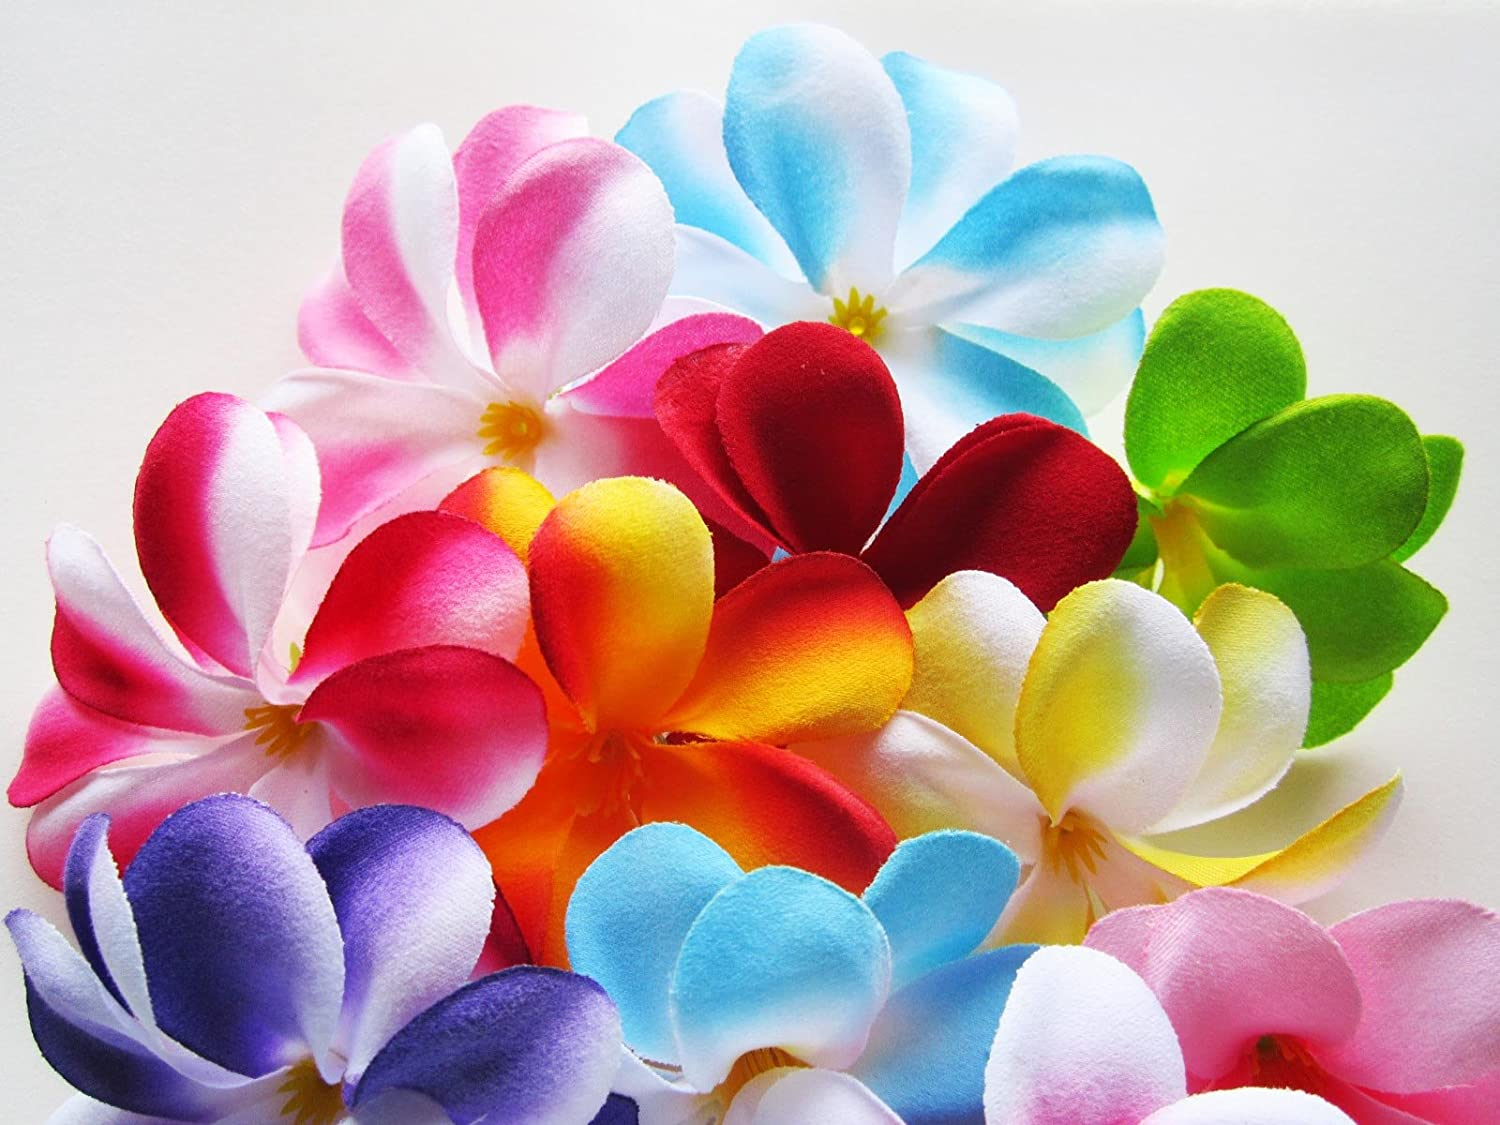 Amazon 100 assorted hawaiian plumeria frangipani silk flower amazon 100 assorted hawaiian plumeria frangipani silk flower heads 3 artificial flowers head fabric floral supplies wholesale lot for wedding izmirmasajfo